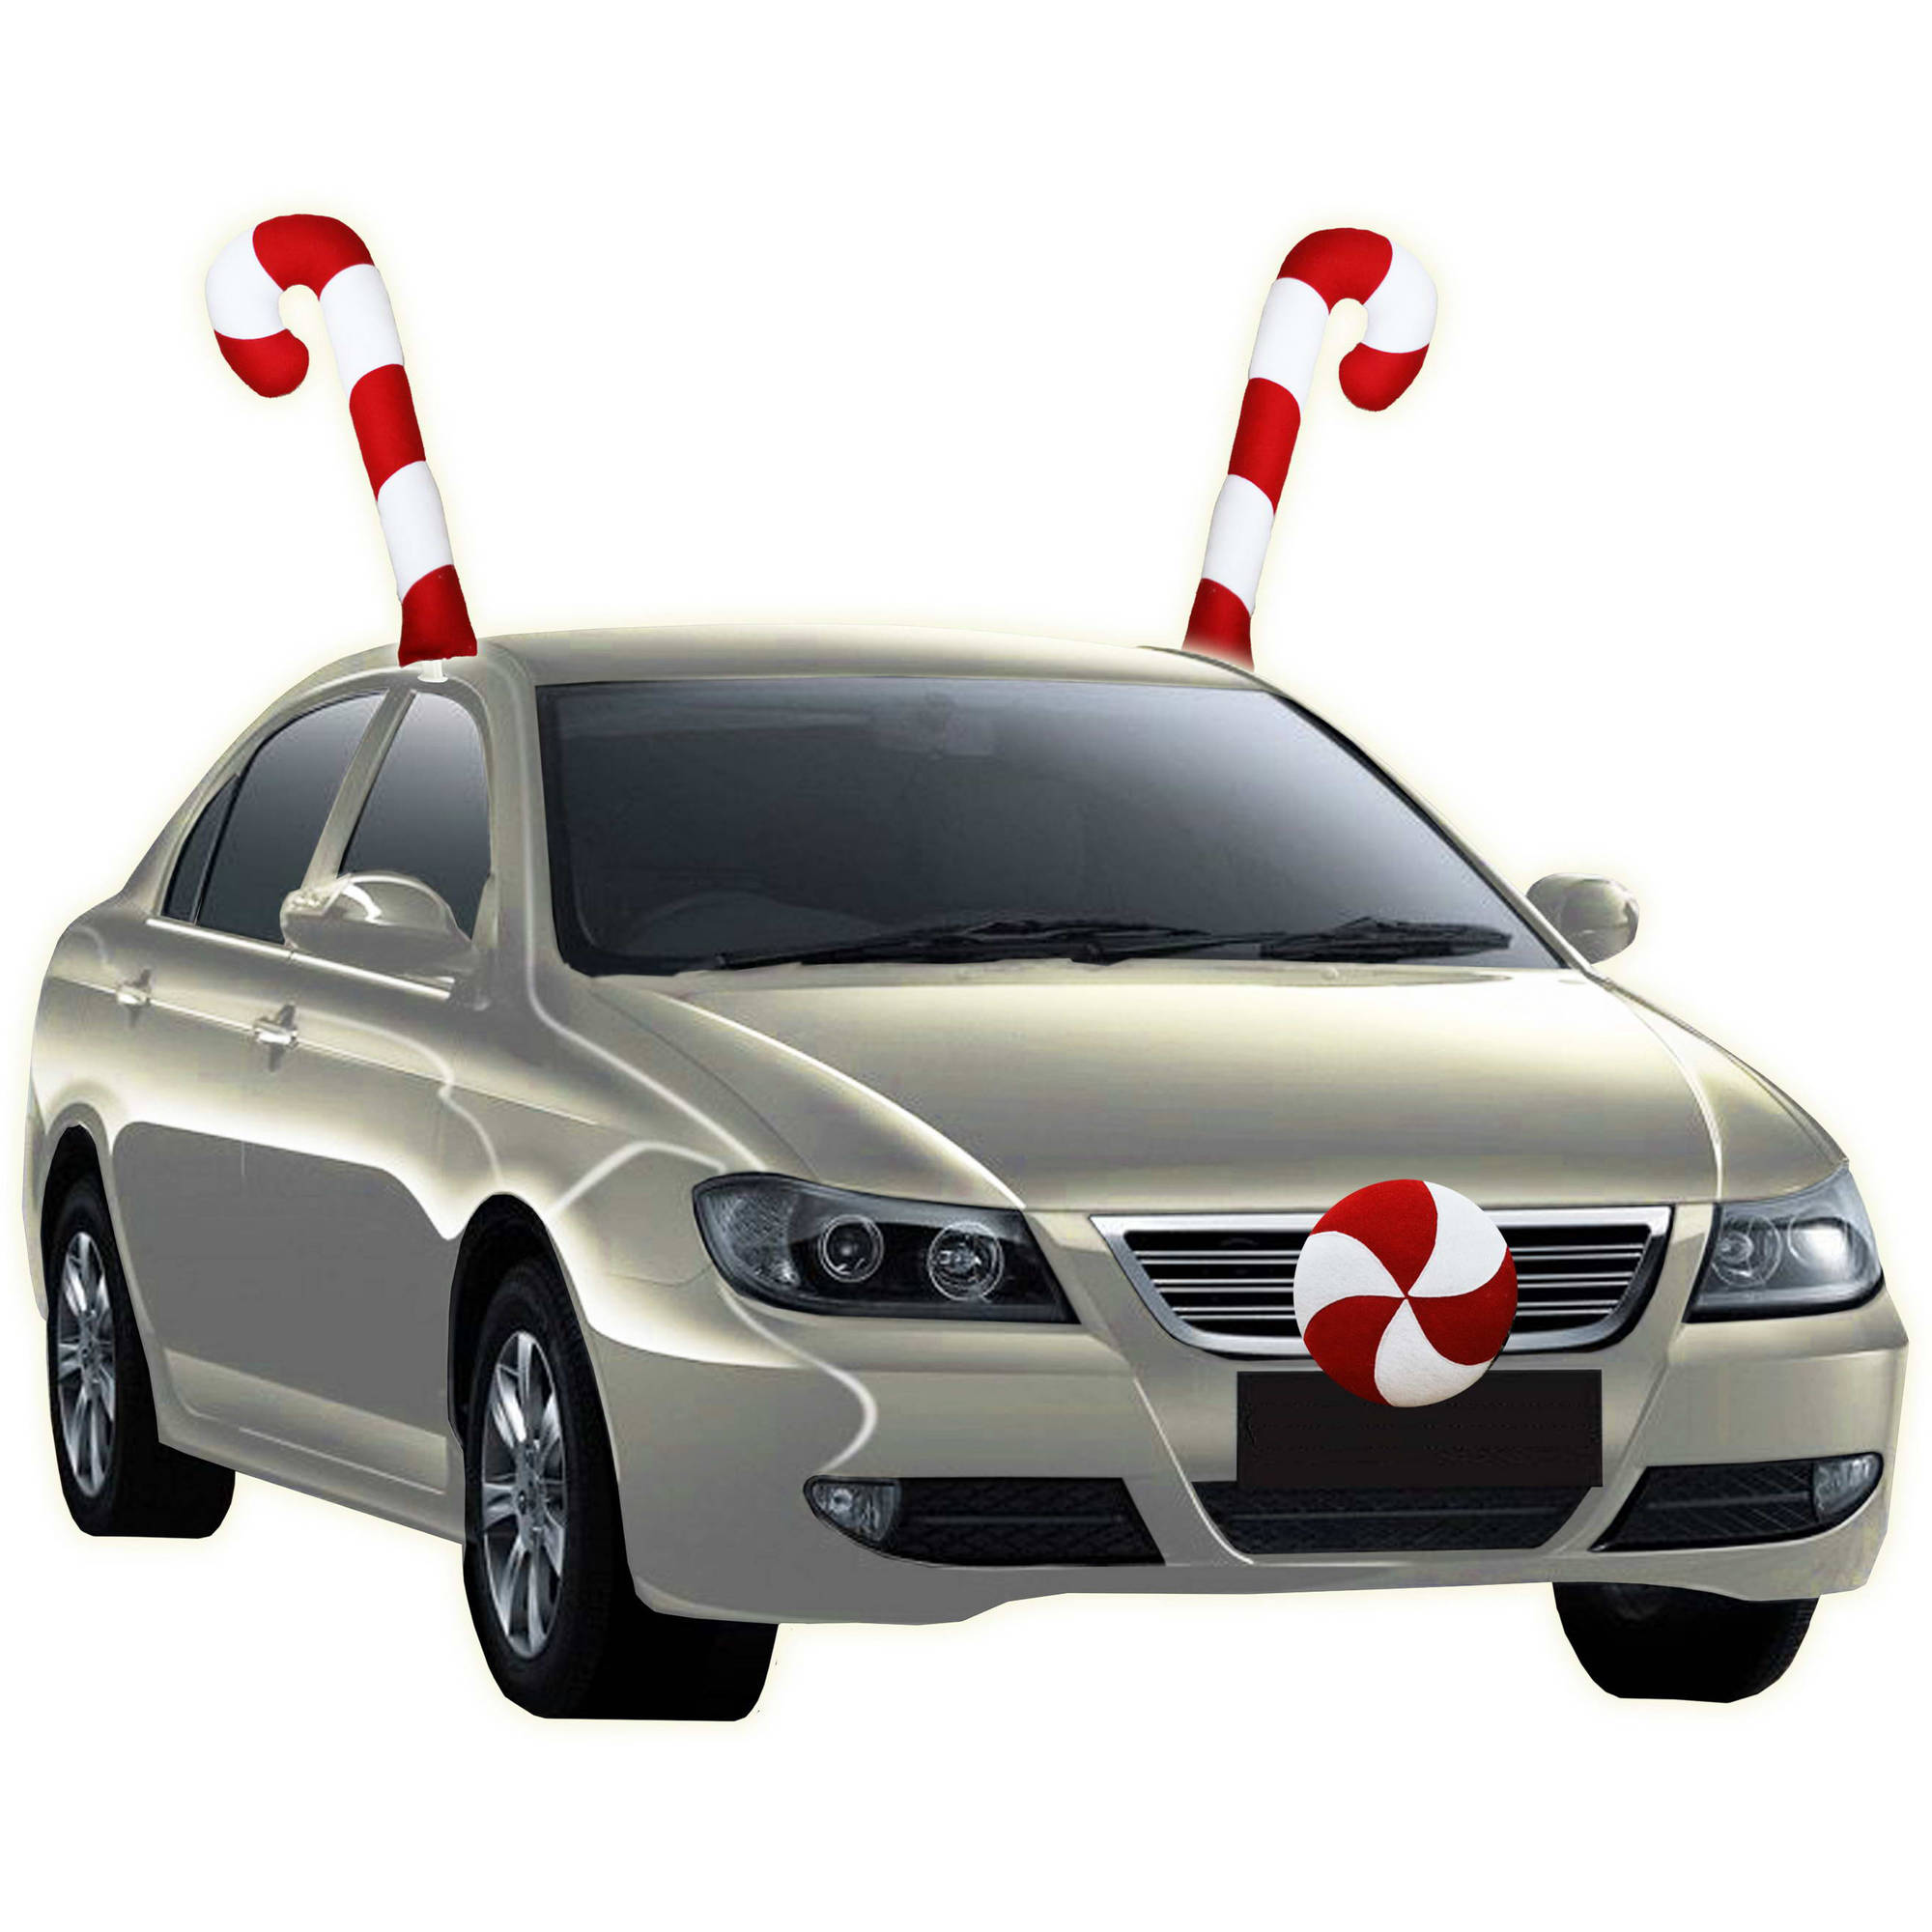 Christmas Car Decorations.Holiday Time Christmas Decor Candy Cane Car Costume